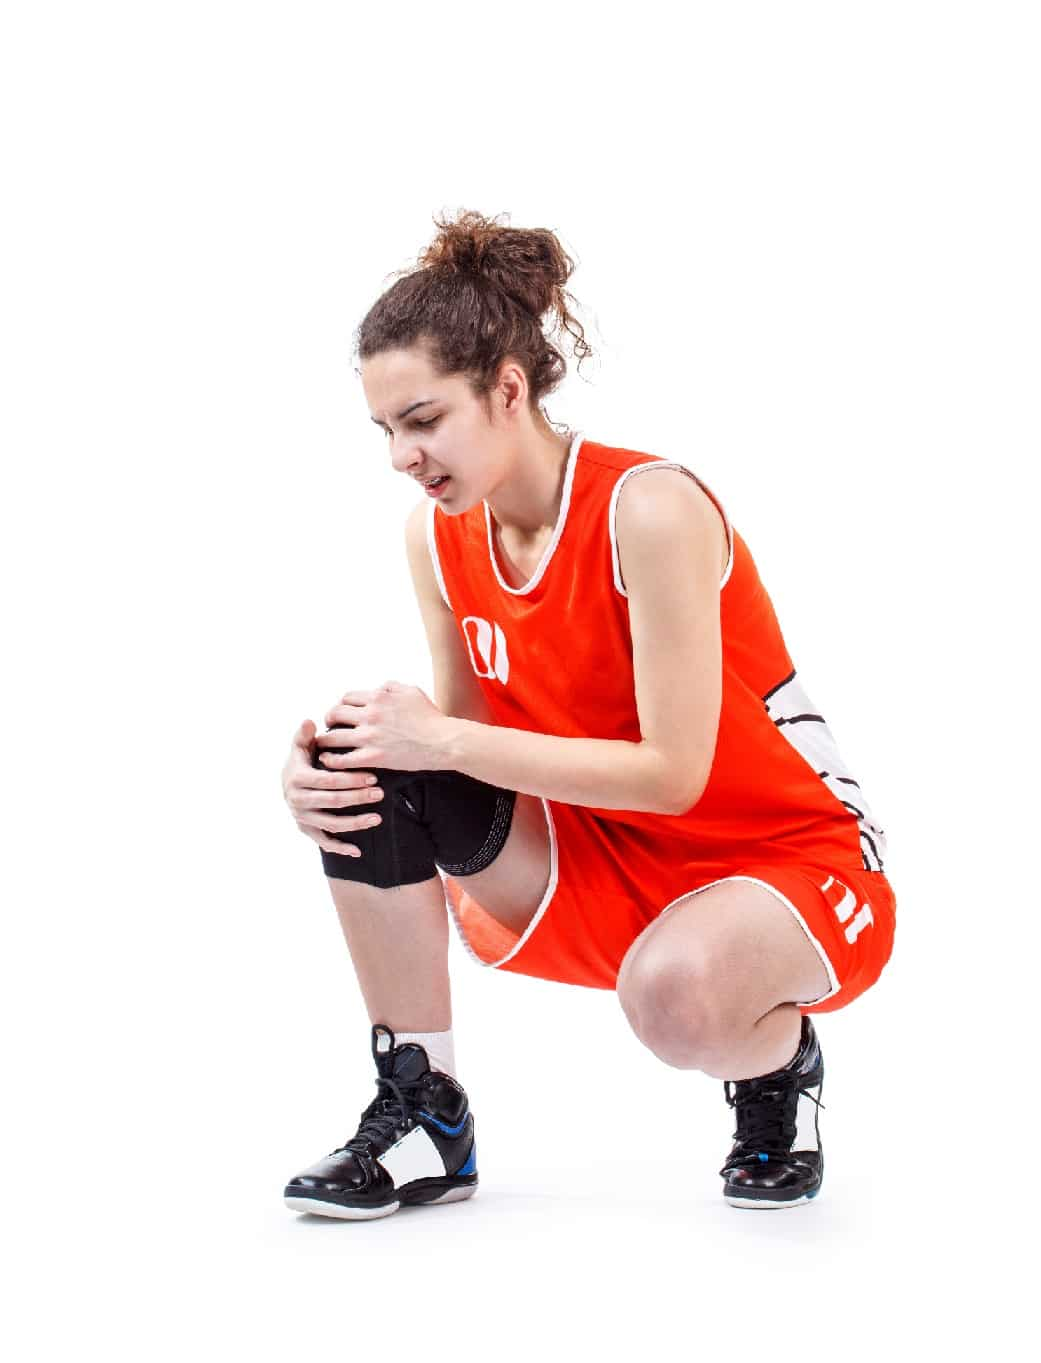 meniscus-tear-female-basketball